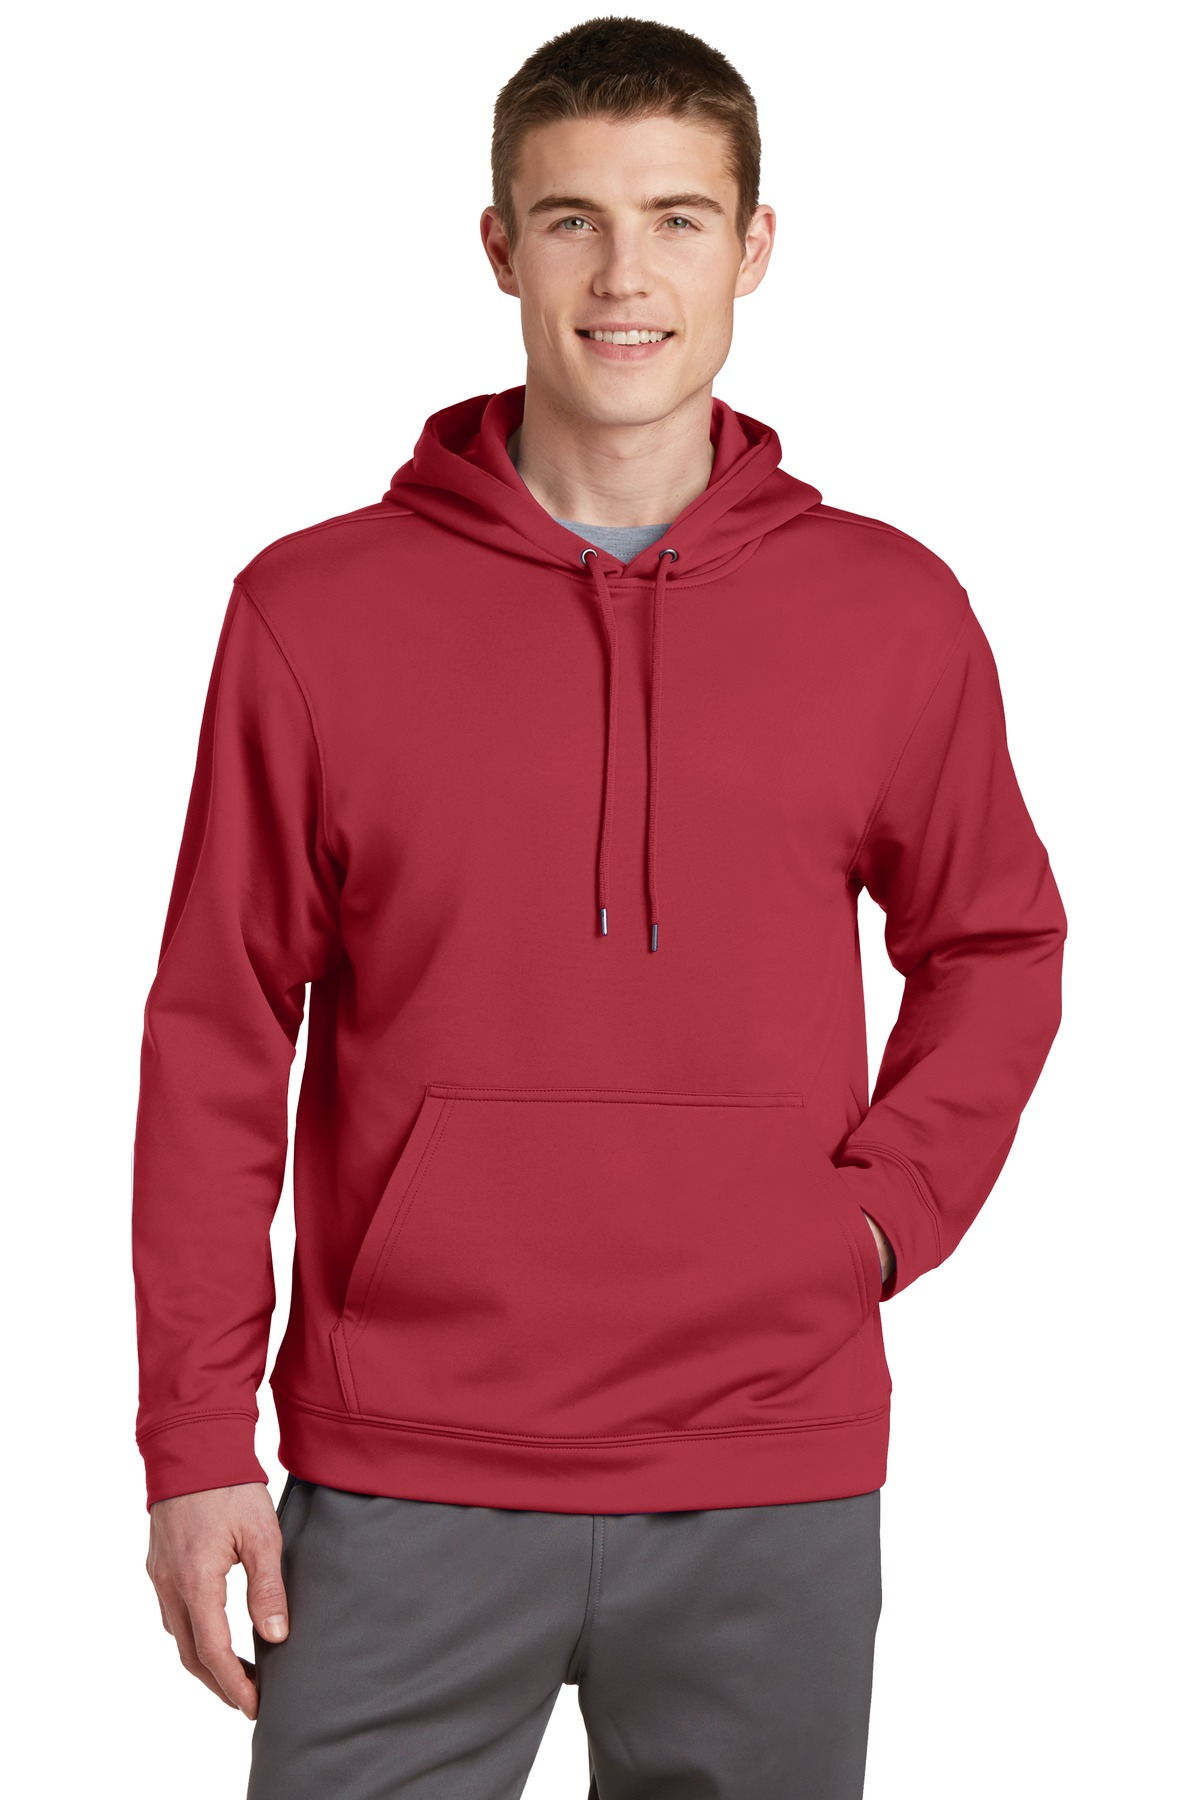 Sport-Tek ®  Sport-Wick ®  Fleece Hooded Pullover.  F244 - Deep Red